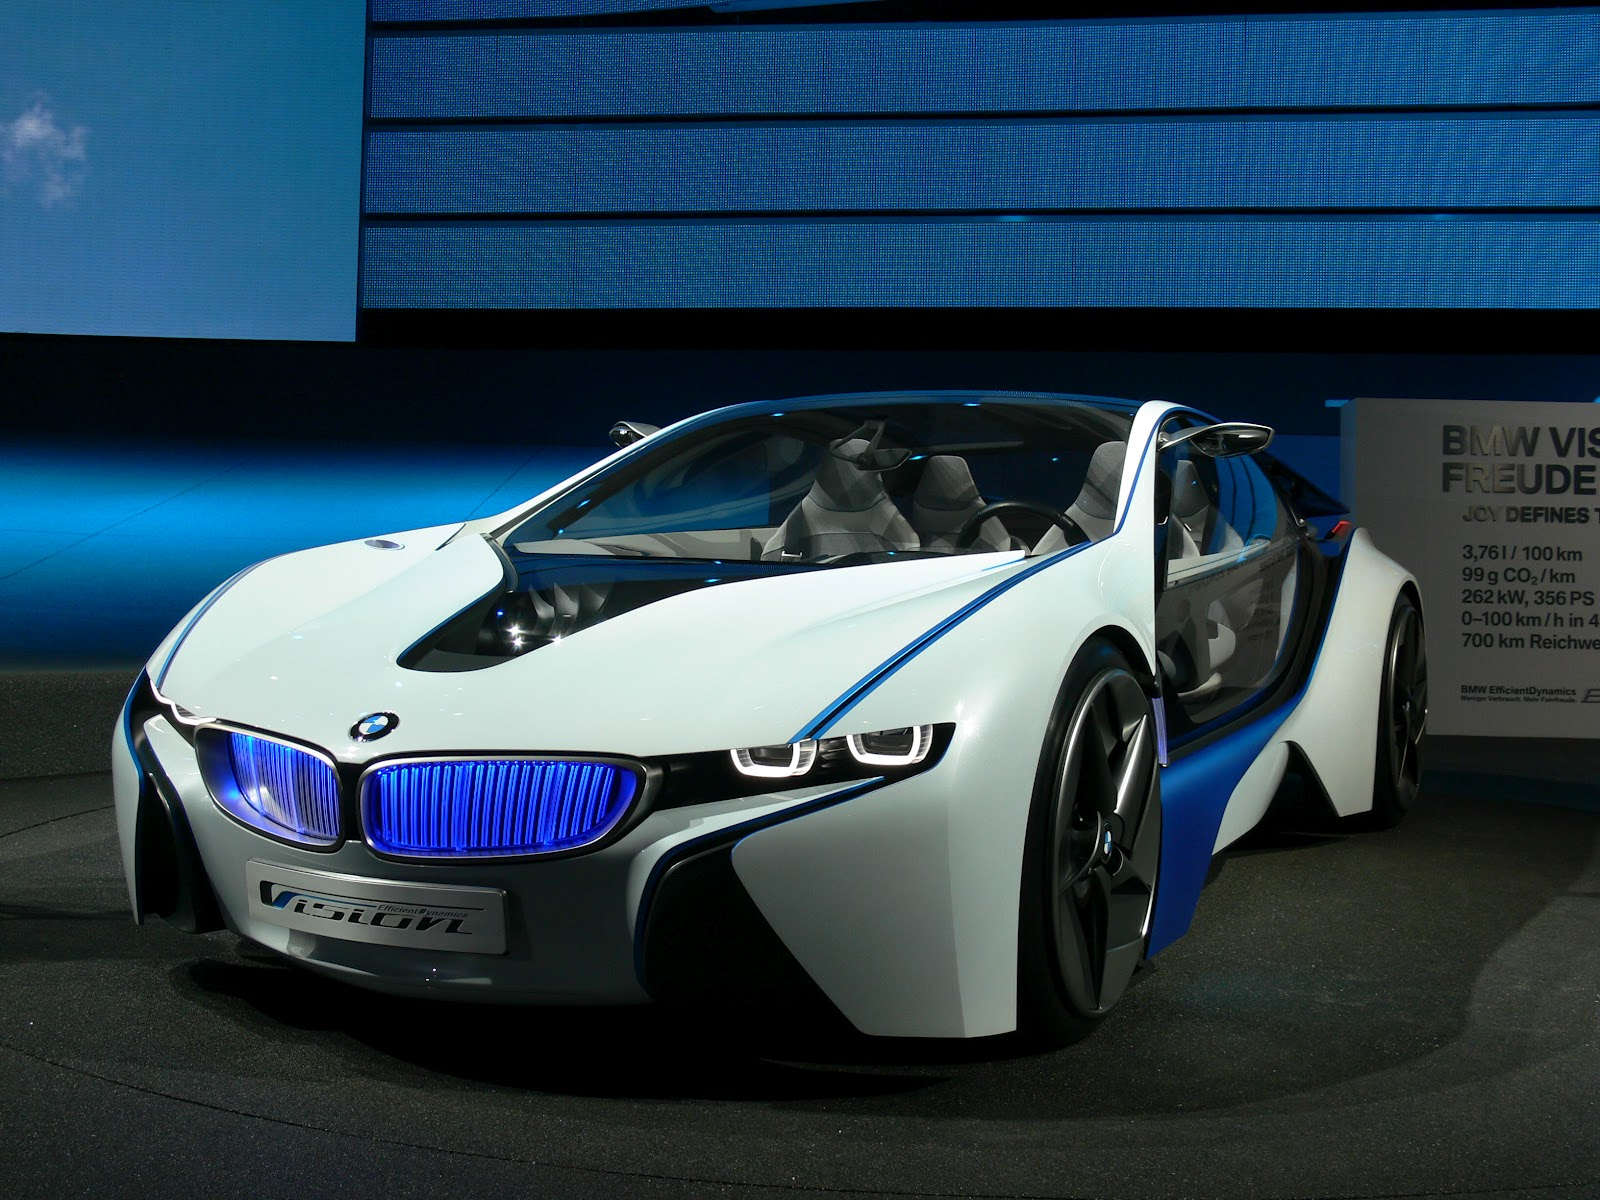 bmw concept racing cars street racing cars. Black Bedroom Furniture Sets. Home Design Ideas